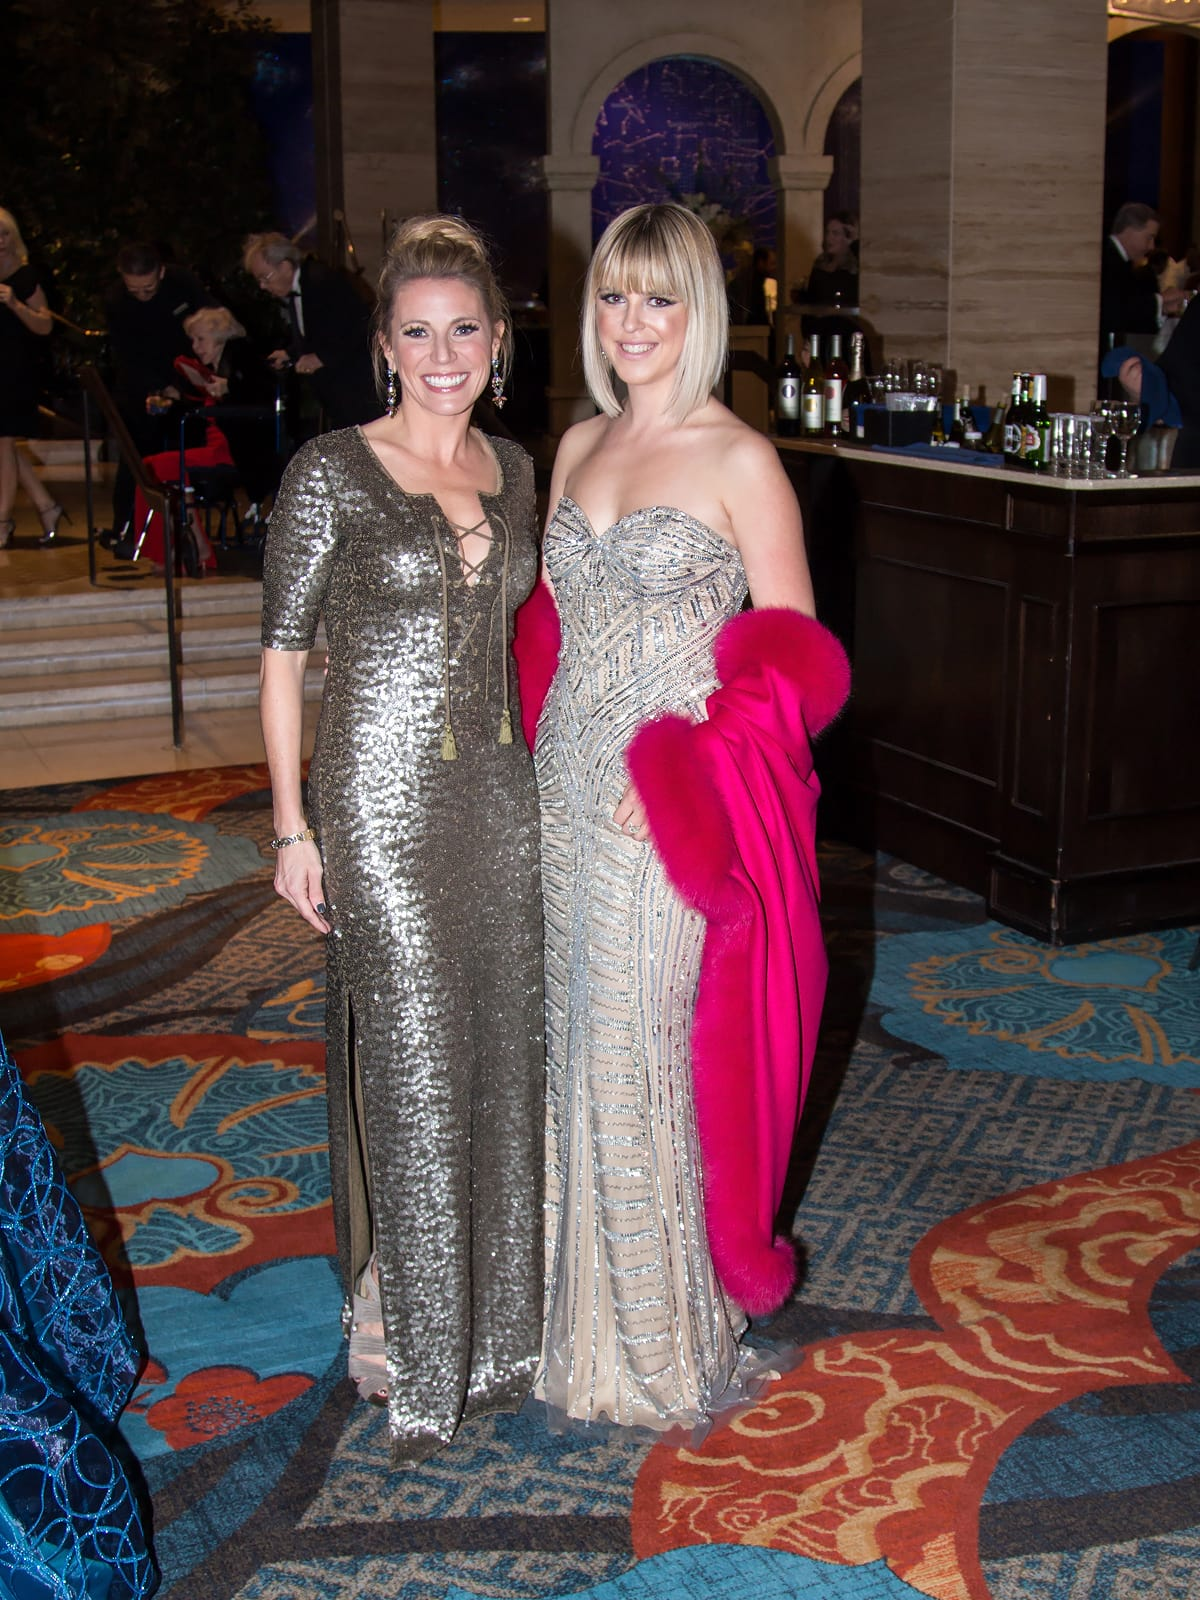 Susan Glassmoyer in Calypso, Elizabeth Fisher in Jovani